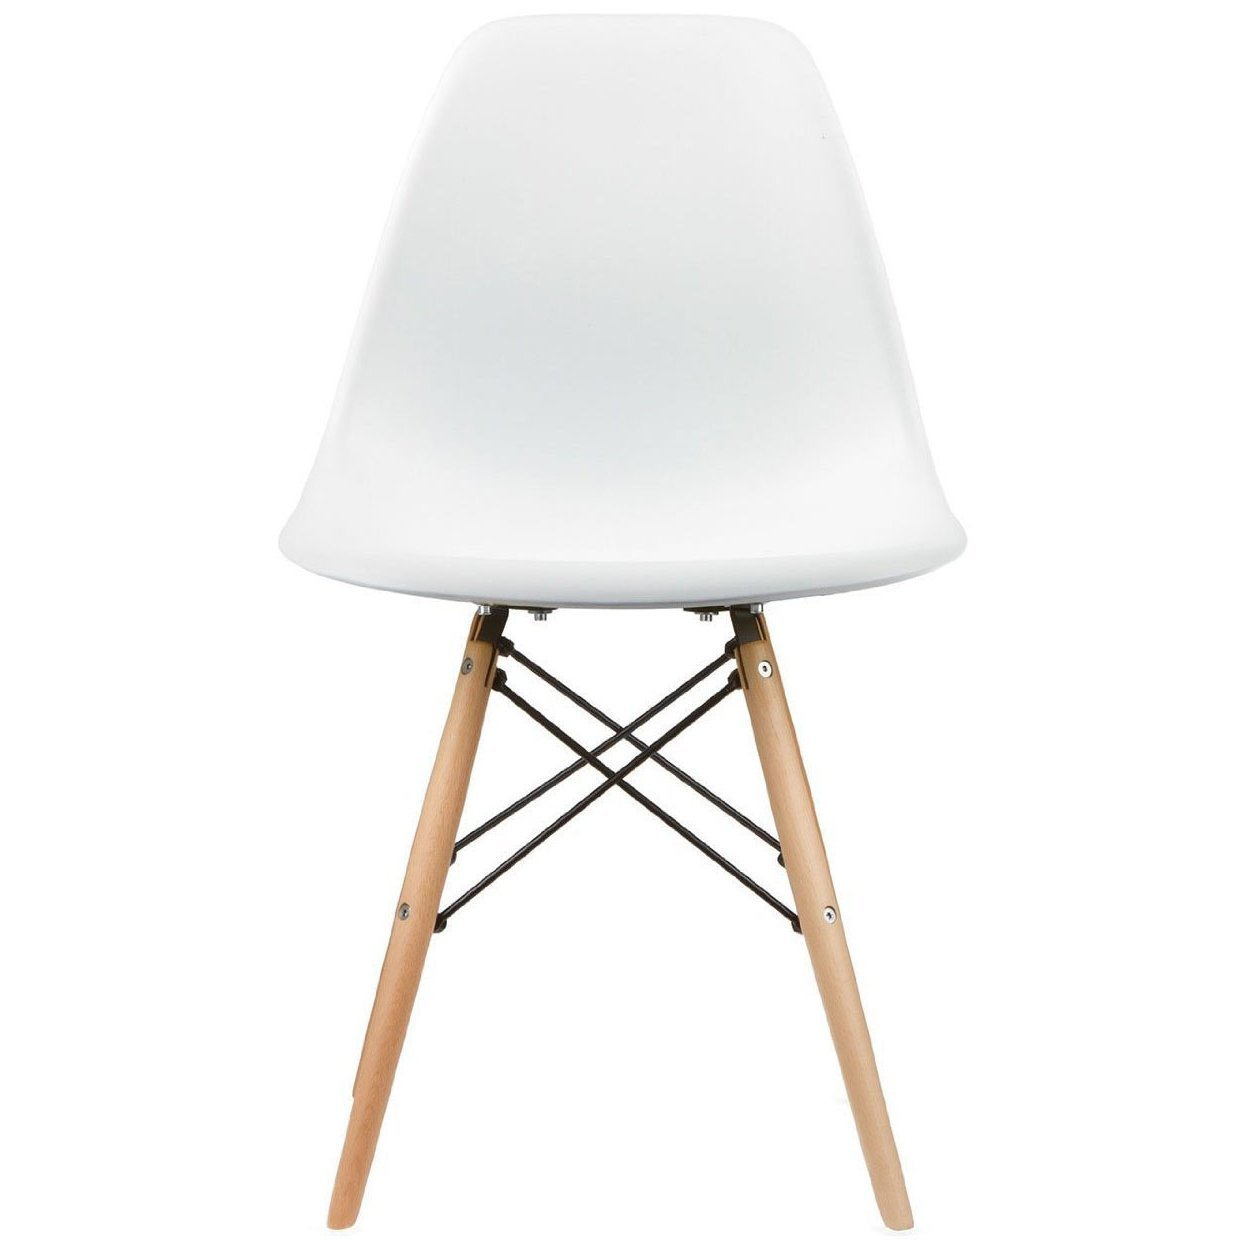 2xhome white eames style side chair natural wood legs eiffel dining room chair